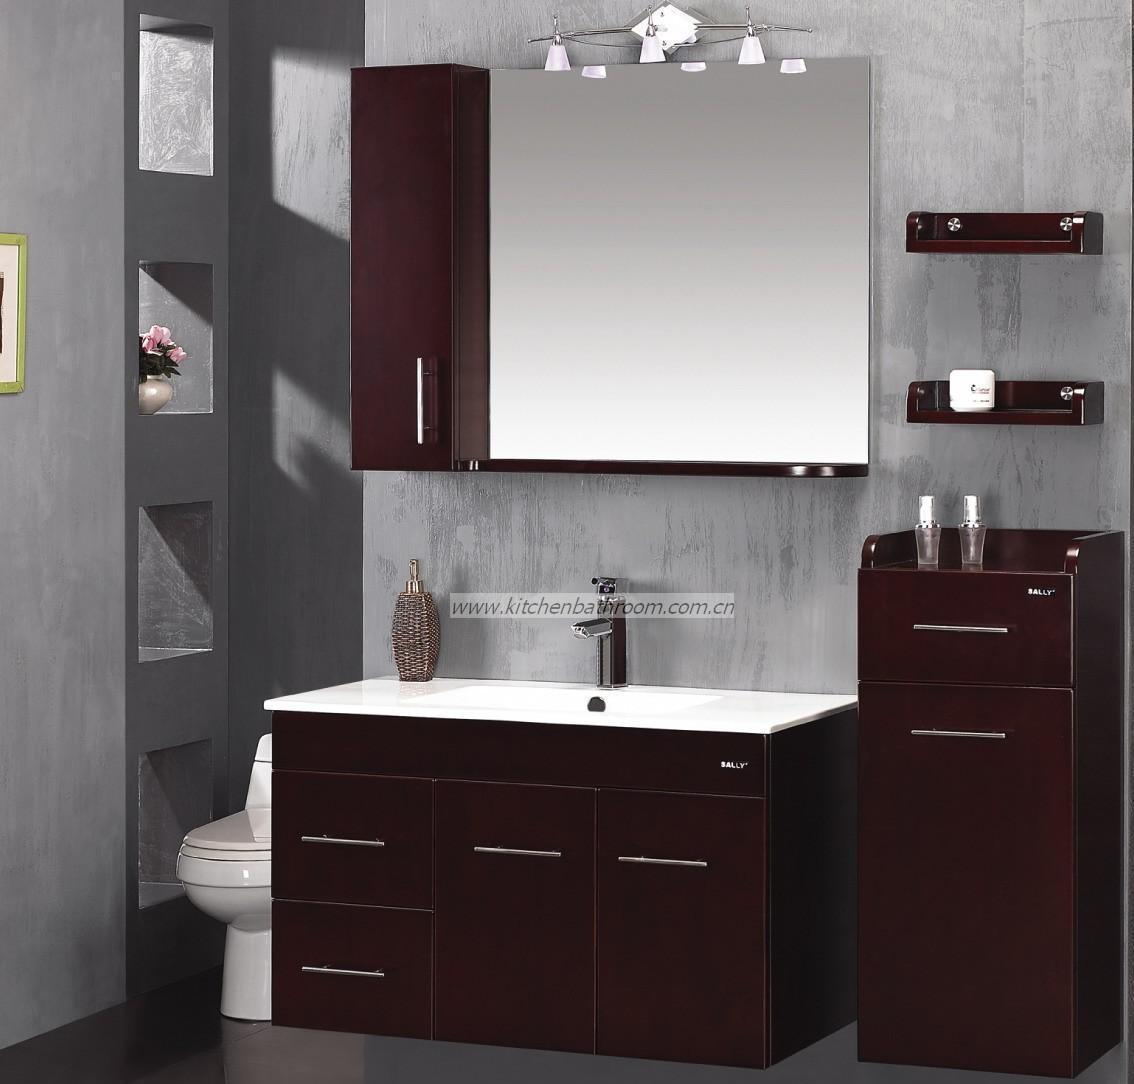 China bathroom cabinets yxbc 2022 china bathroom for Bathroom cabinet ideas furniture